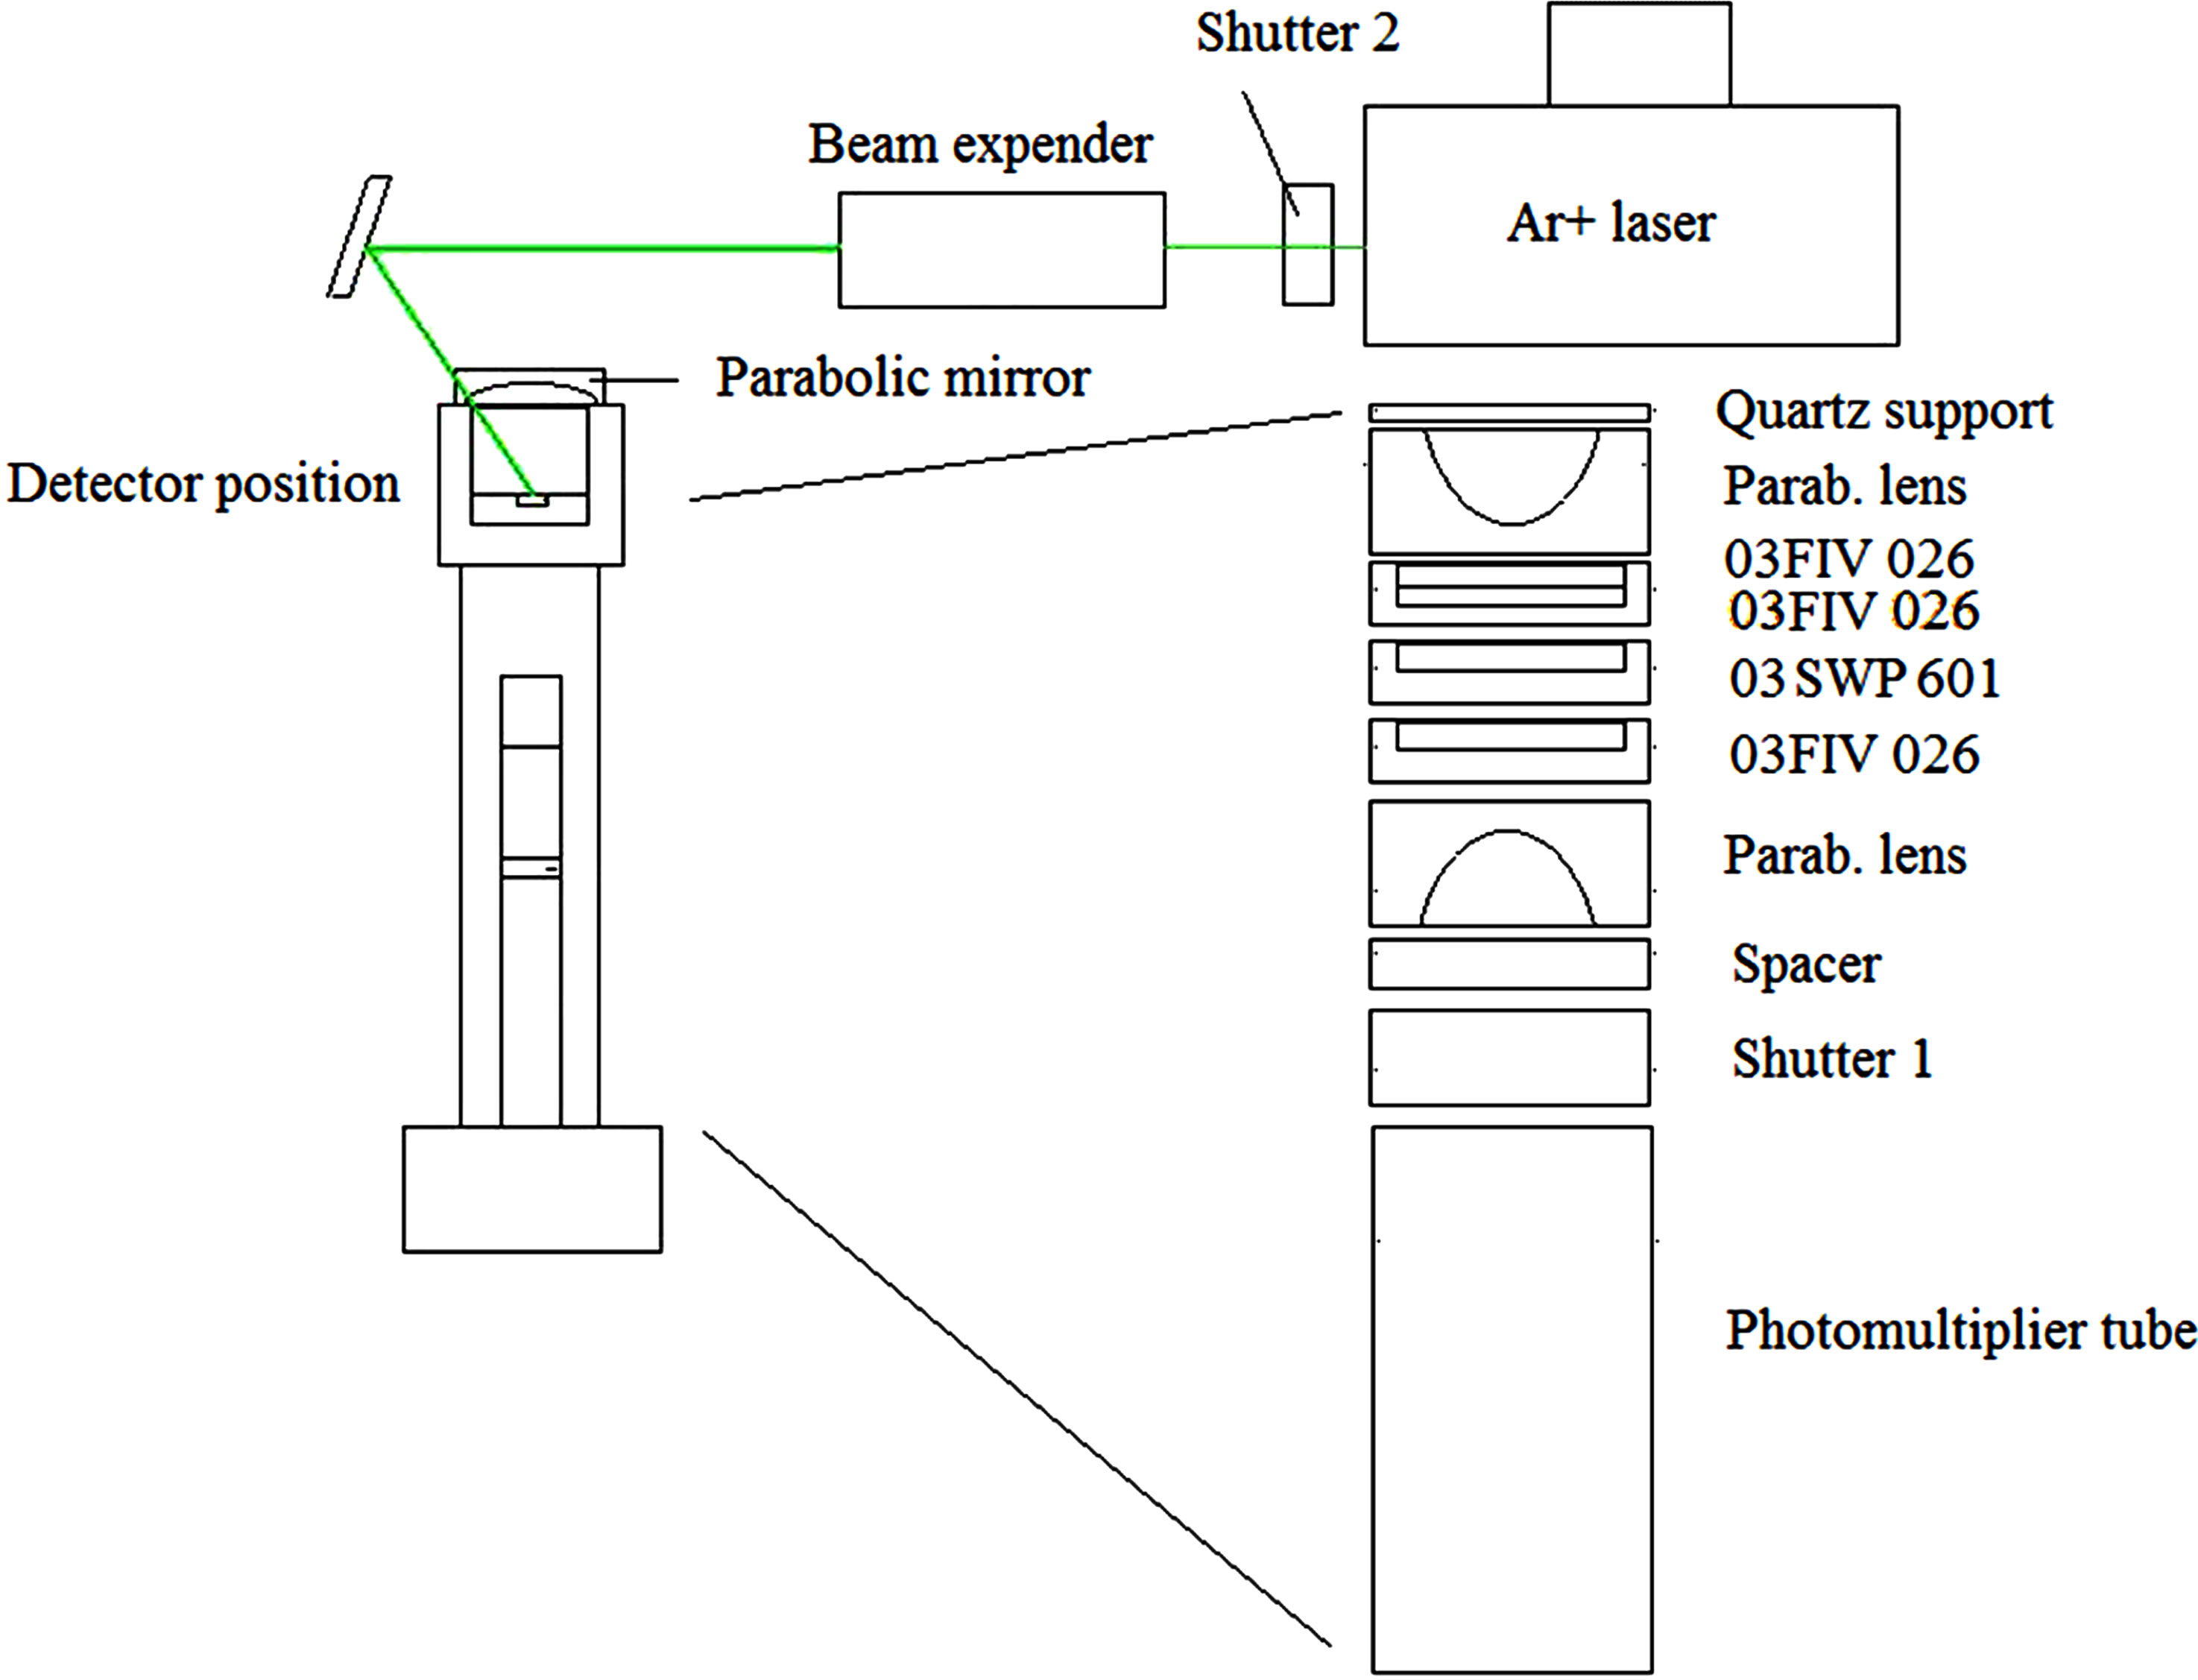 External And Environmental Radiation Dosimetry With Optically Details About Vthh6 Velleman Sa Circuit Board Holder Layout Of The Osl Device Using An Ar Laser Beam Expender